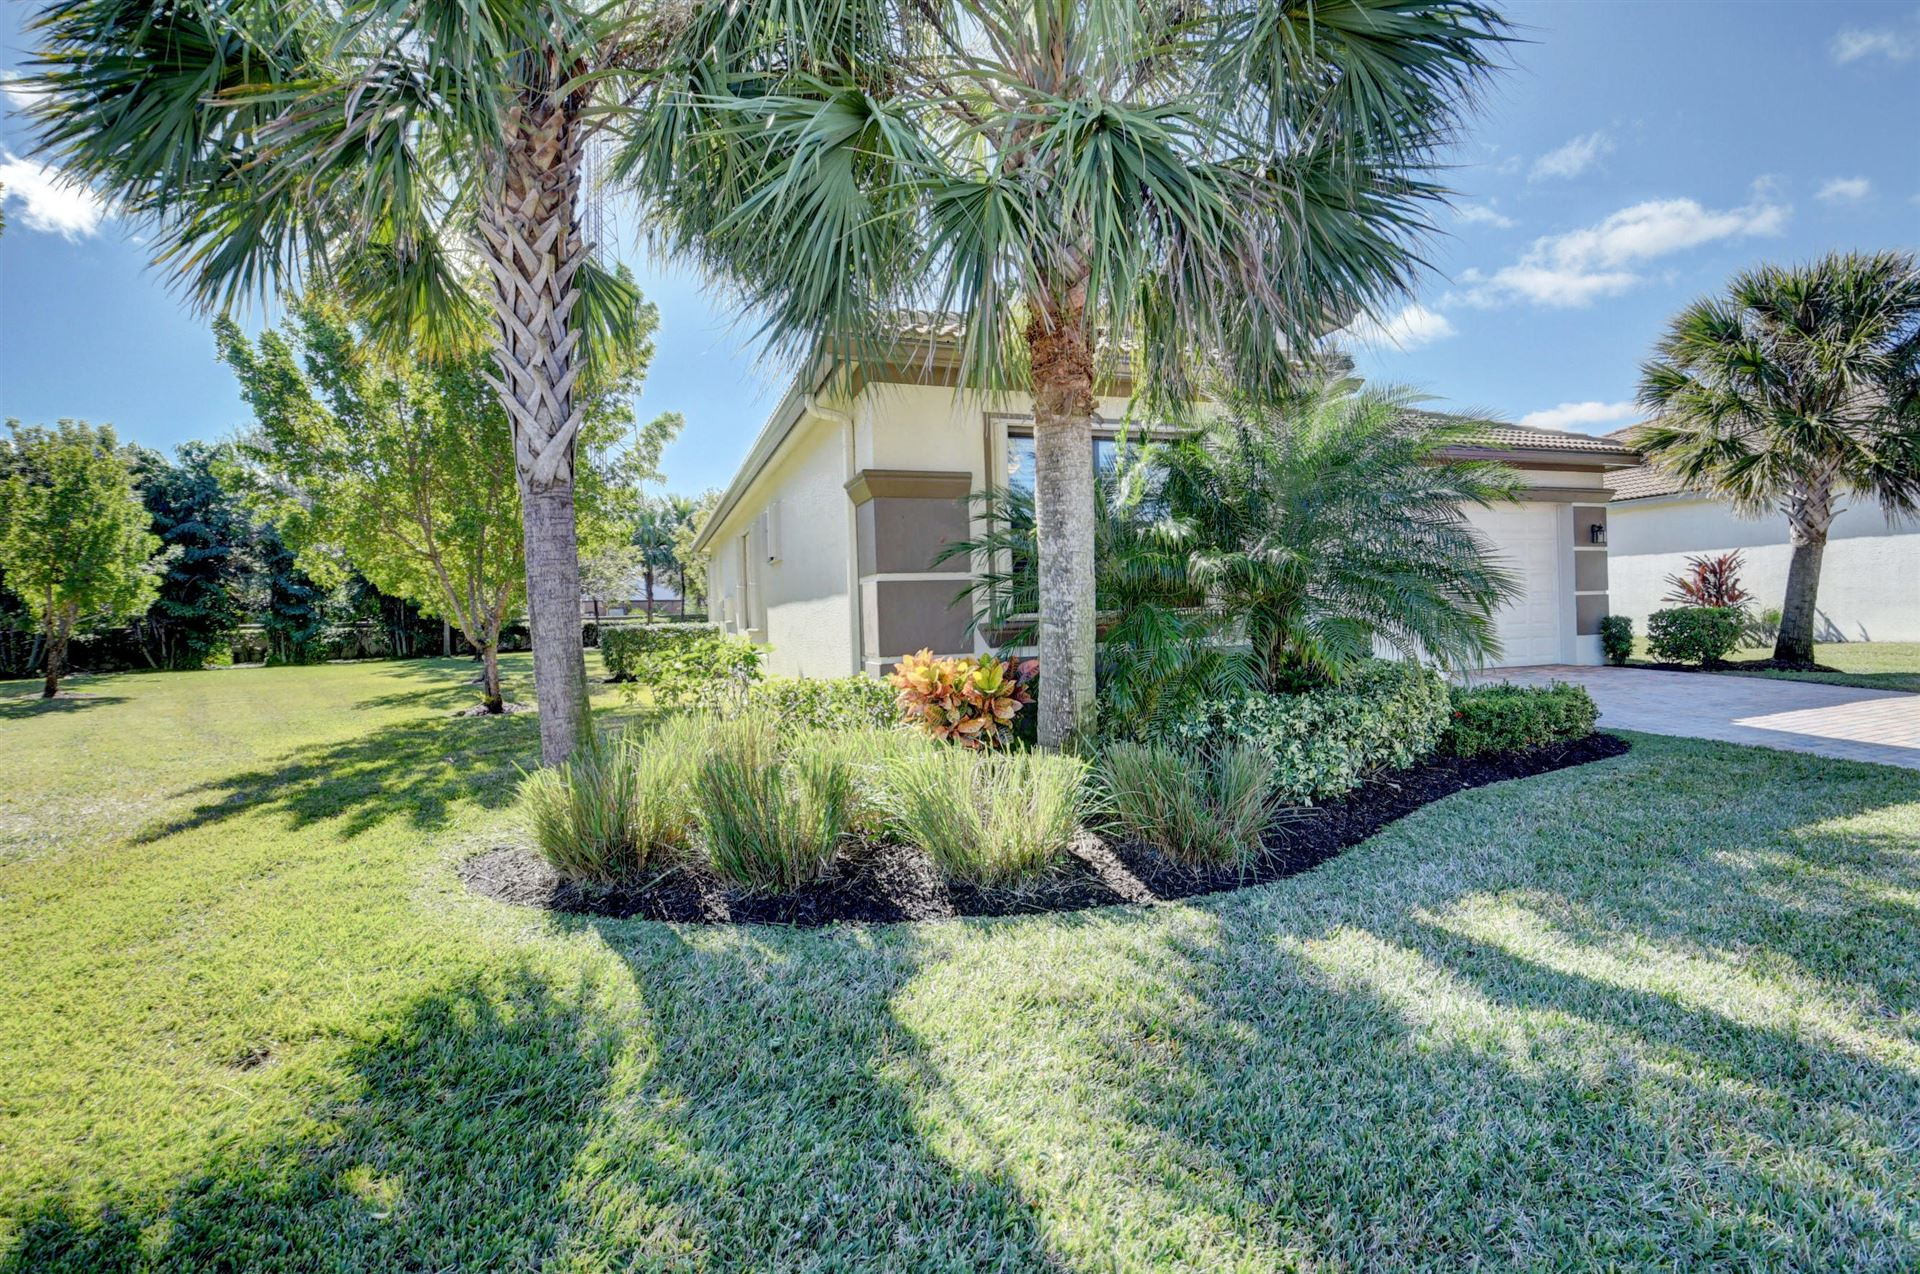 Photo of 9482 Isles Cay Drive, Delray Beach, FL 33446 (MLS # RX-10687050)